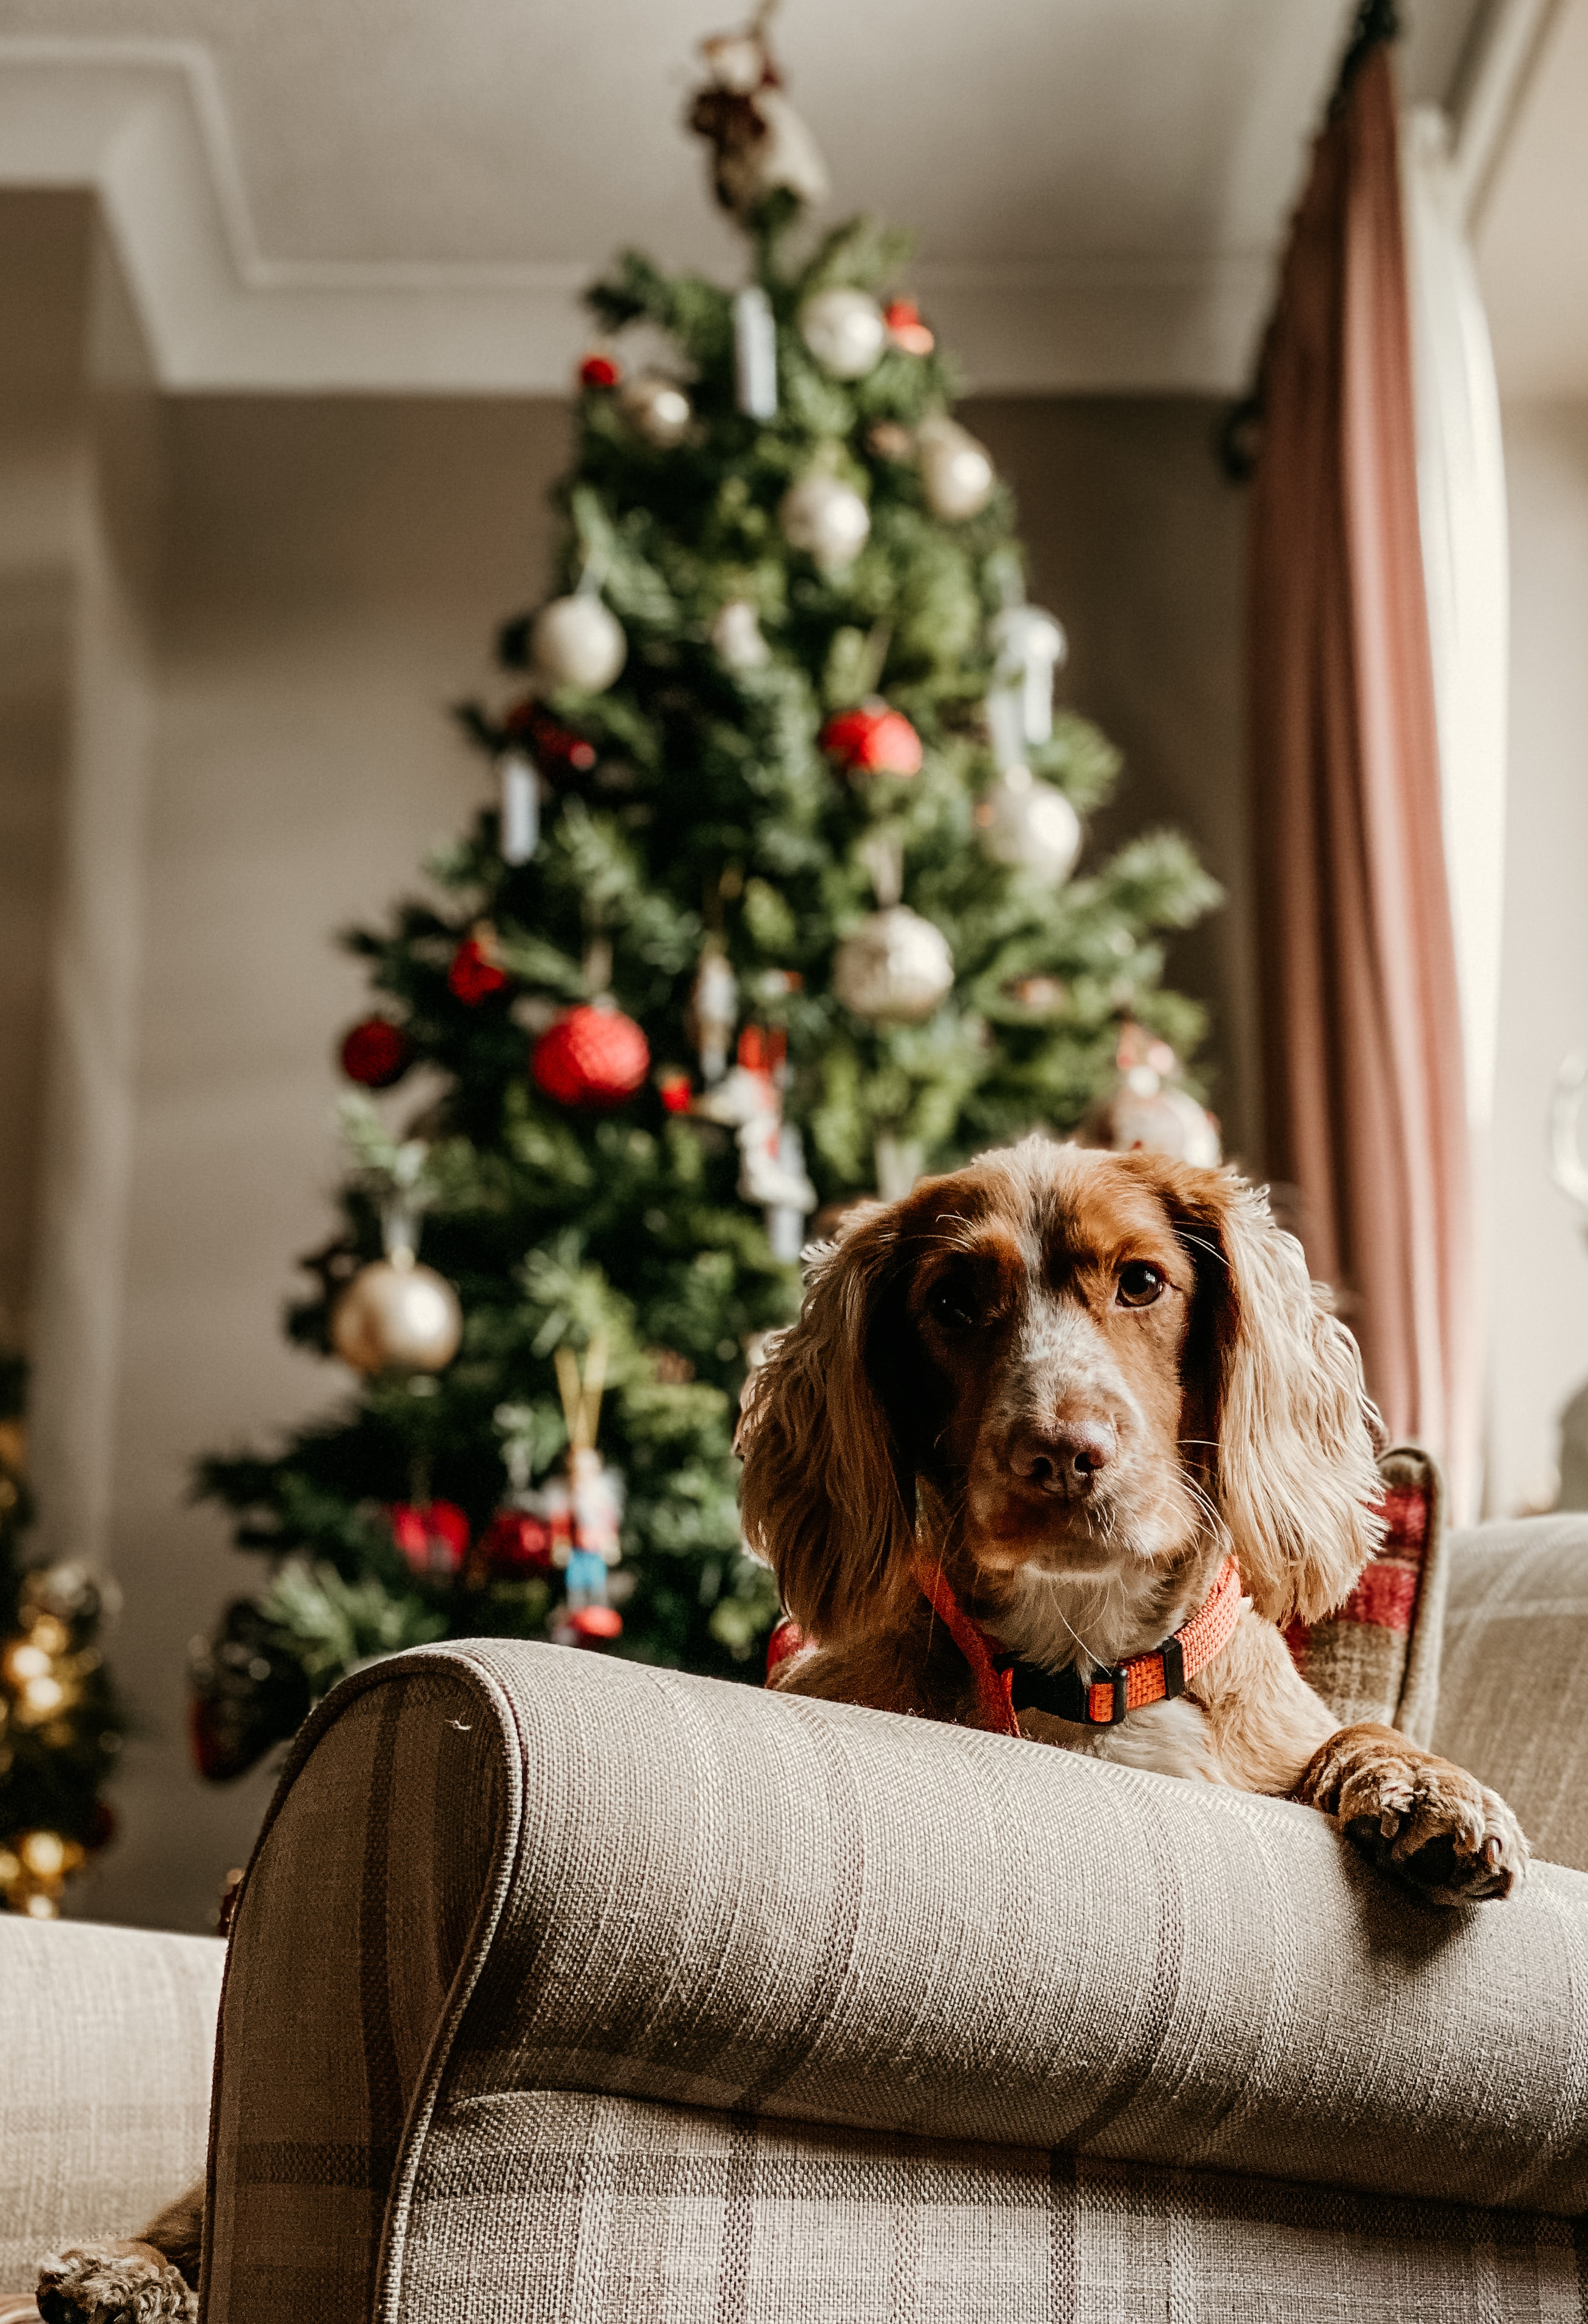 Dog on couch with Christmas tree in the background